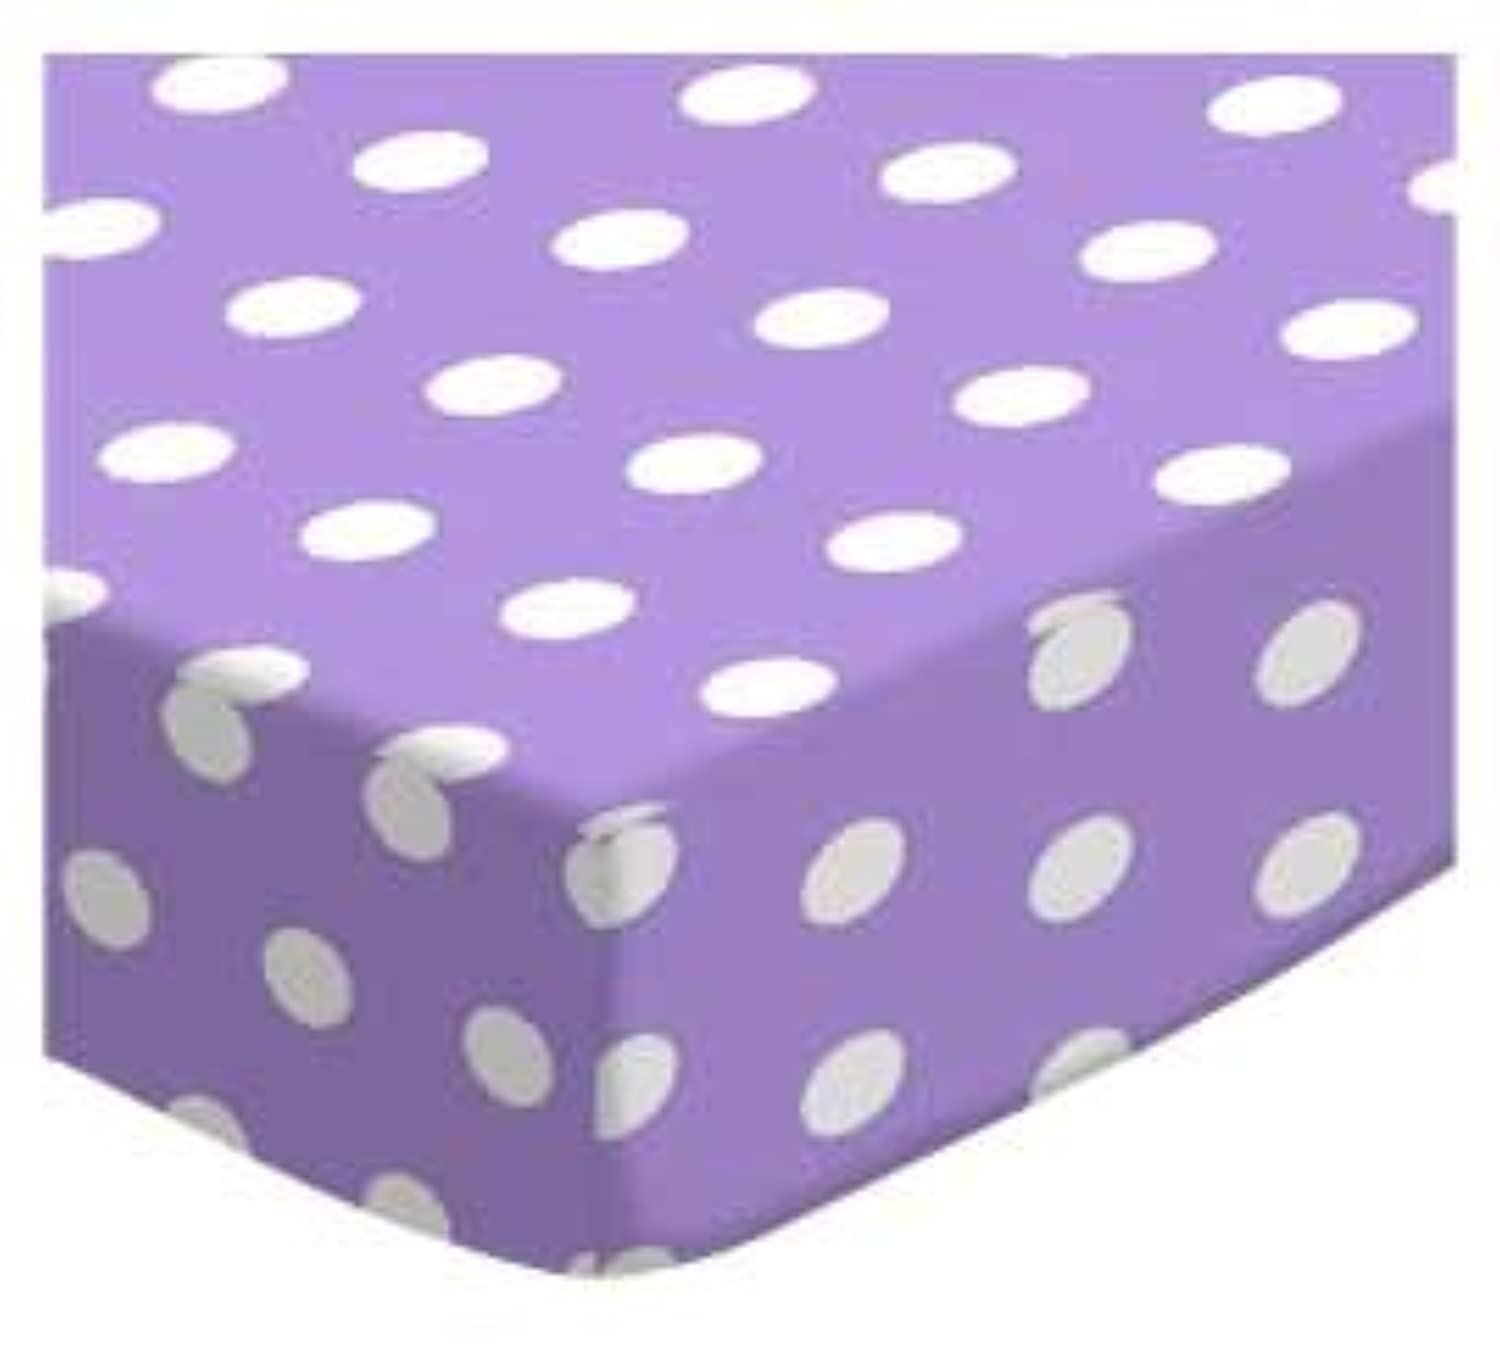 SheetWorld Fitted Cradle Sheet - Polka Dots Lavender - Made In USA by sheetworld